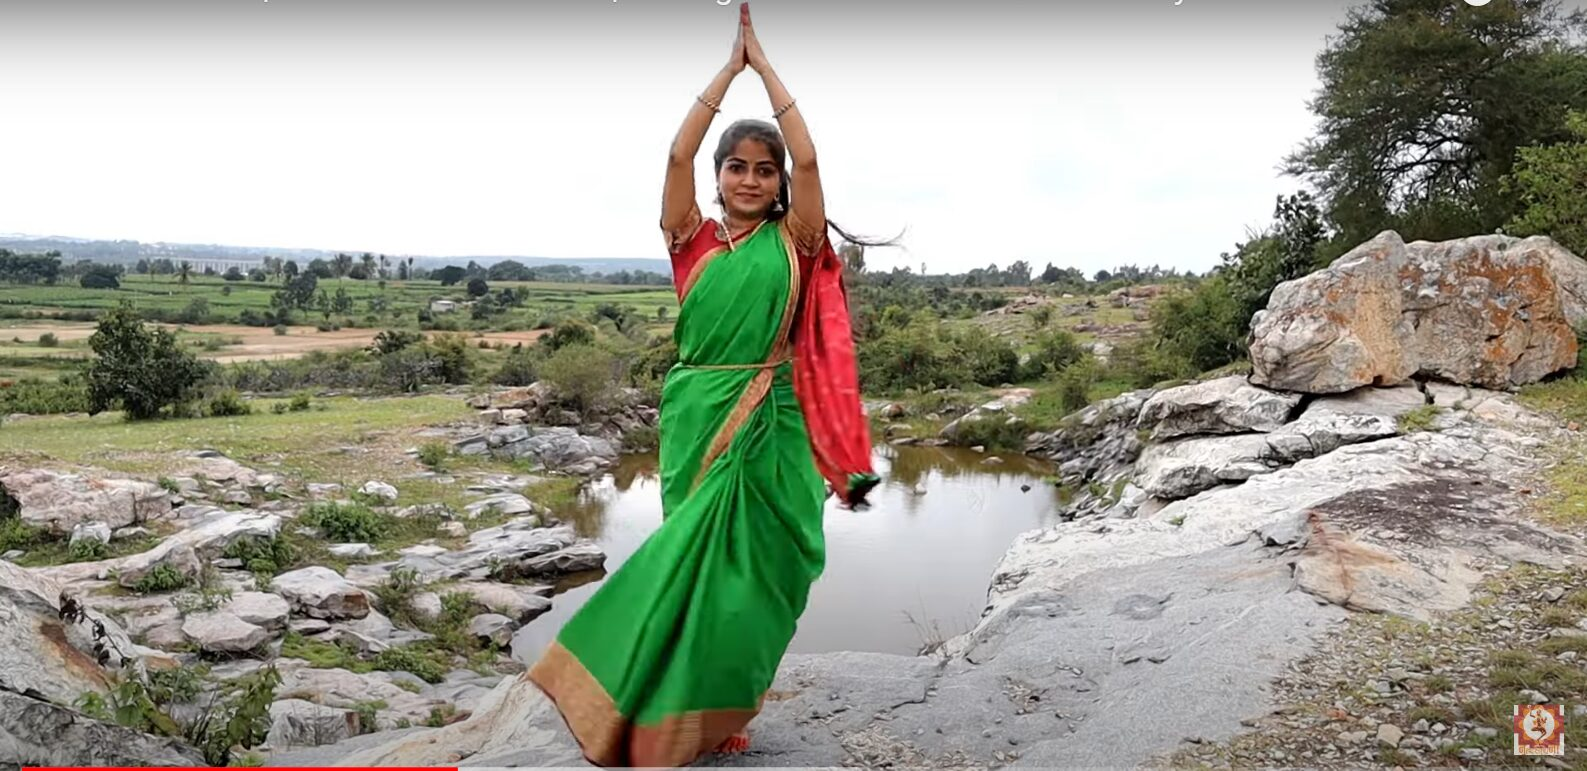 I AM A DOCTOR AND I LOVE CLASSICAL DANCE